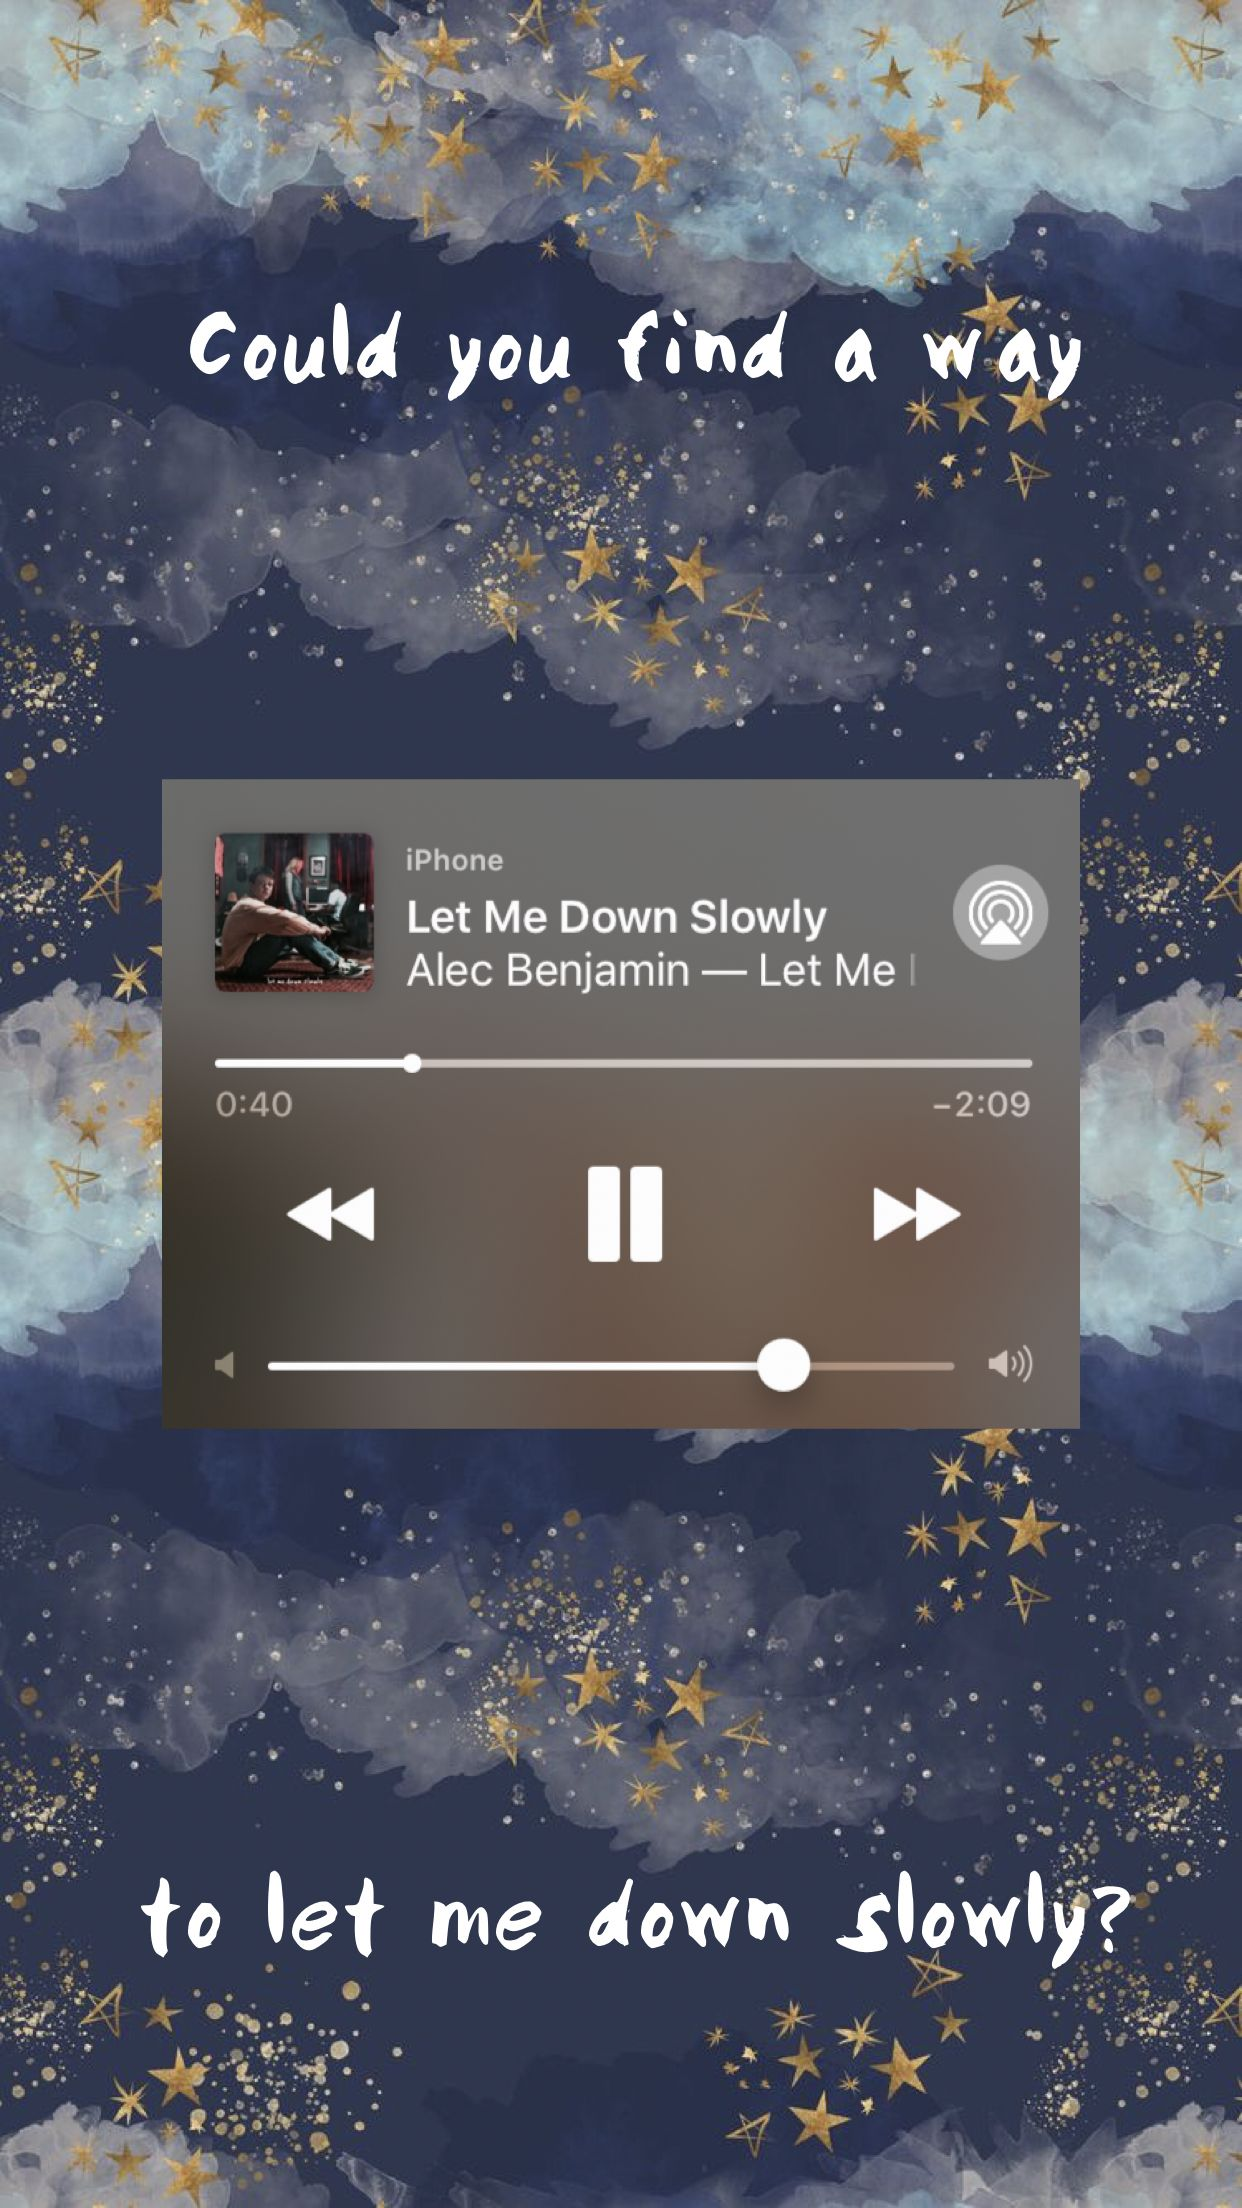 Let Me Down Slowly Alec Benjamin Song Lyrics Wallpaper Music Wallpaper Let Me Down